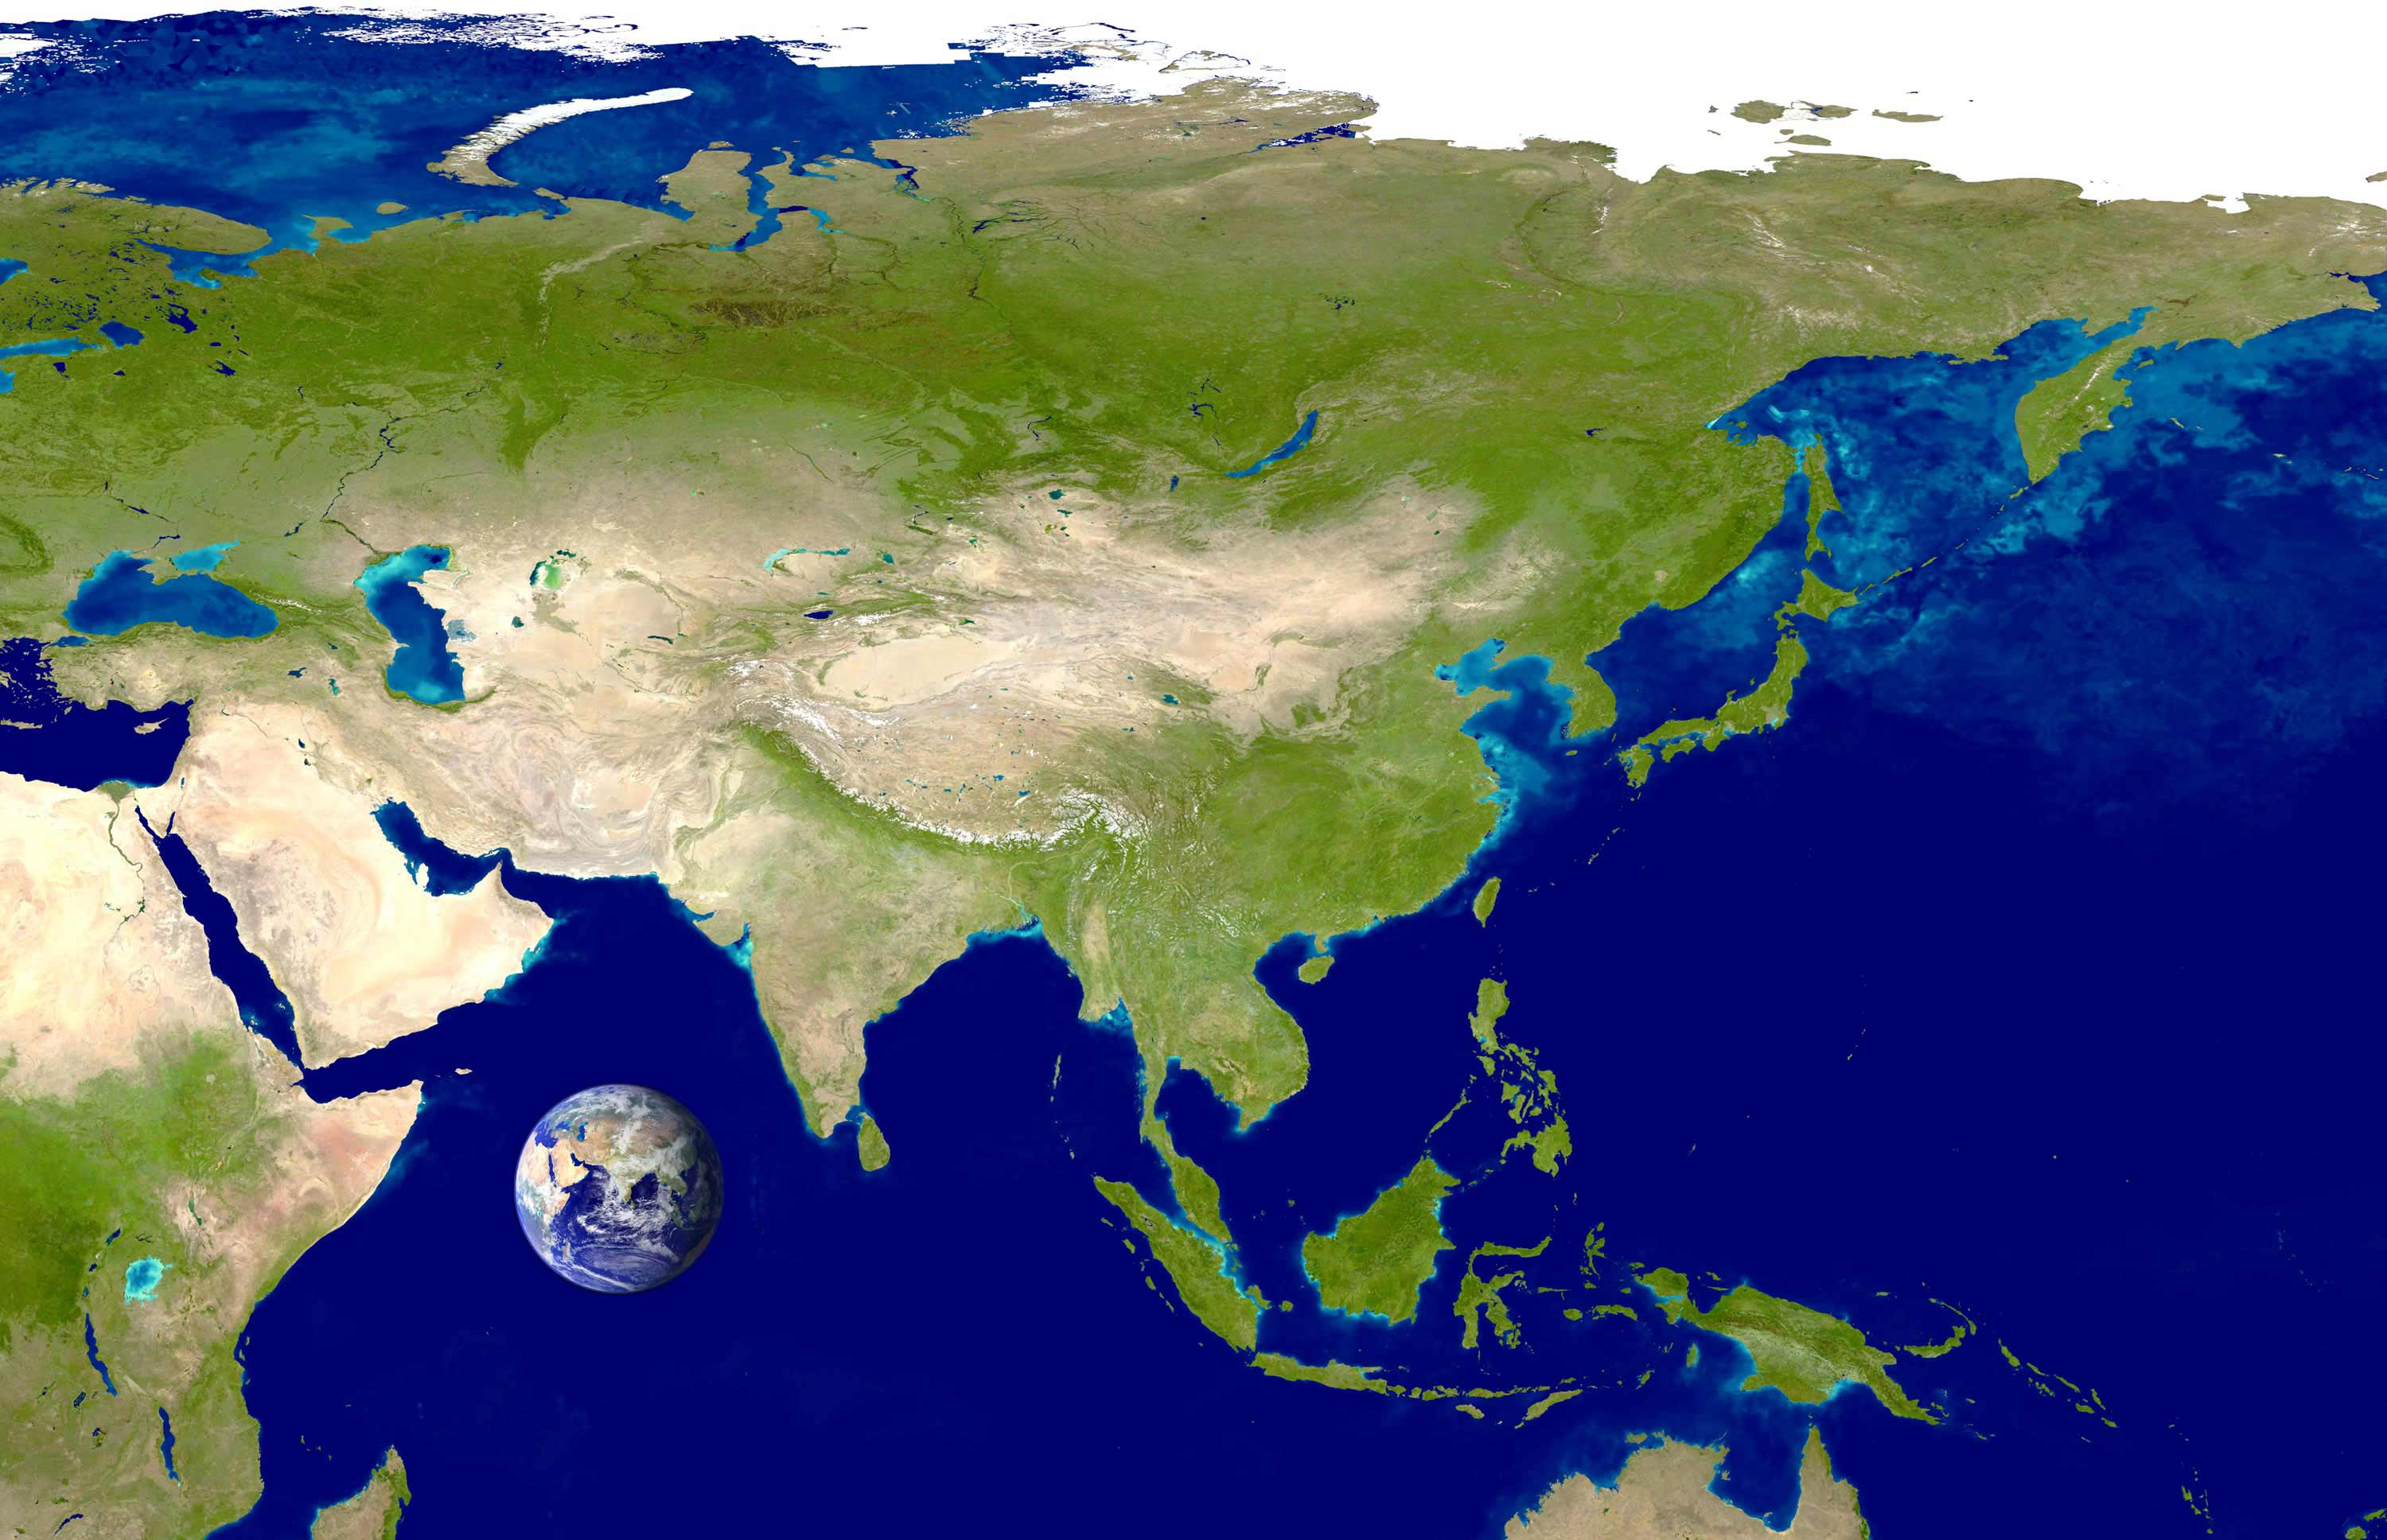 Google Map Of Asia.Google Images Maps Satellite Imagery Hd Downloads Free Full Hd